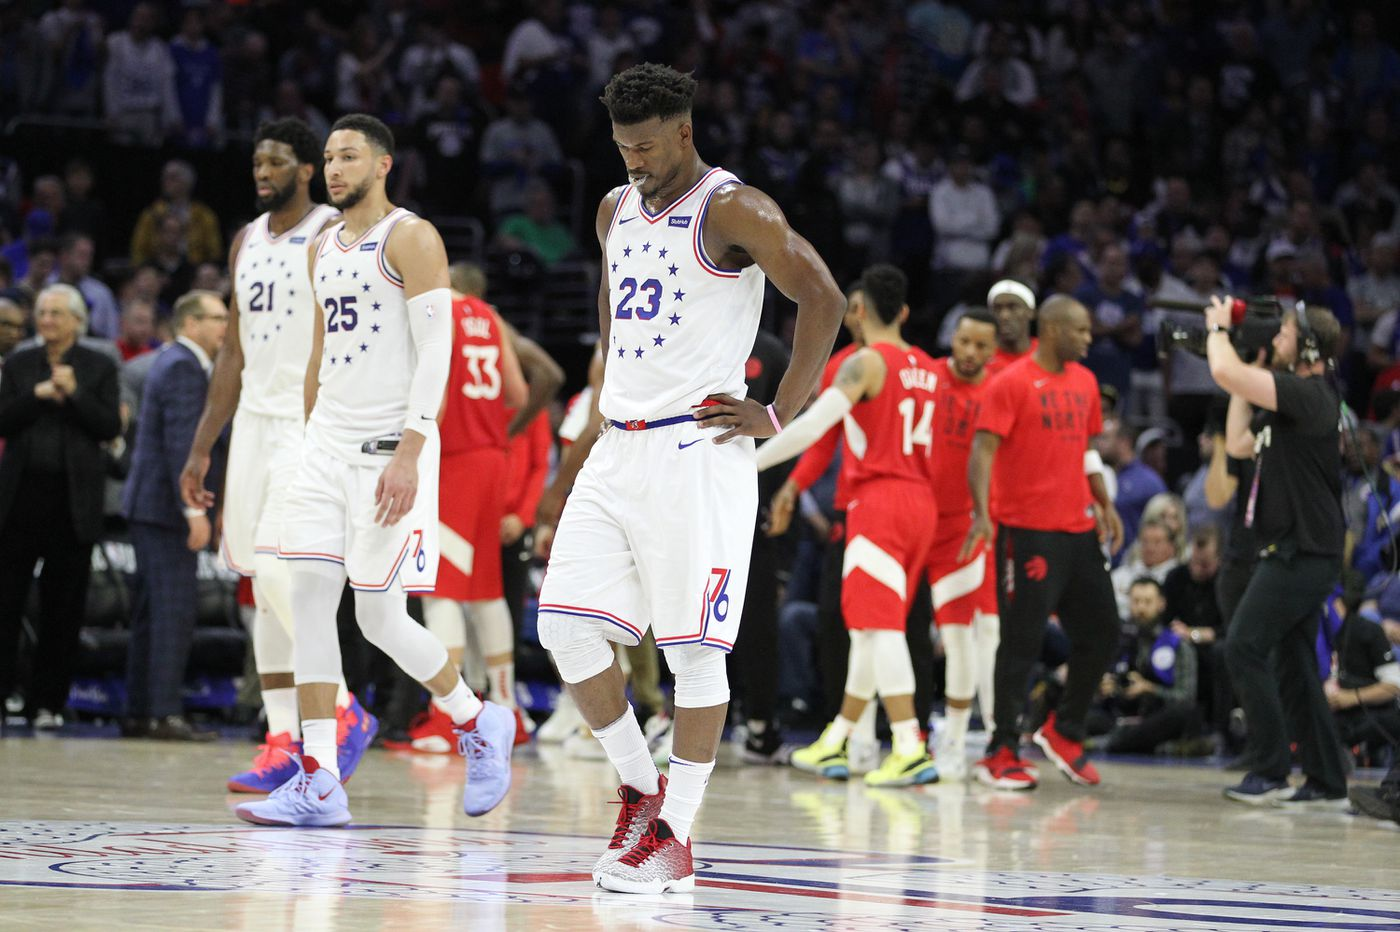 Evaluating the Sixers: Where do they go from here?